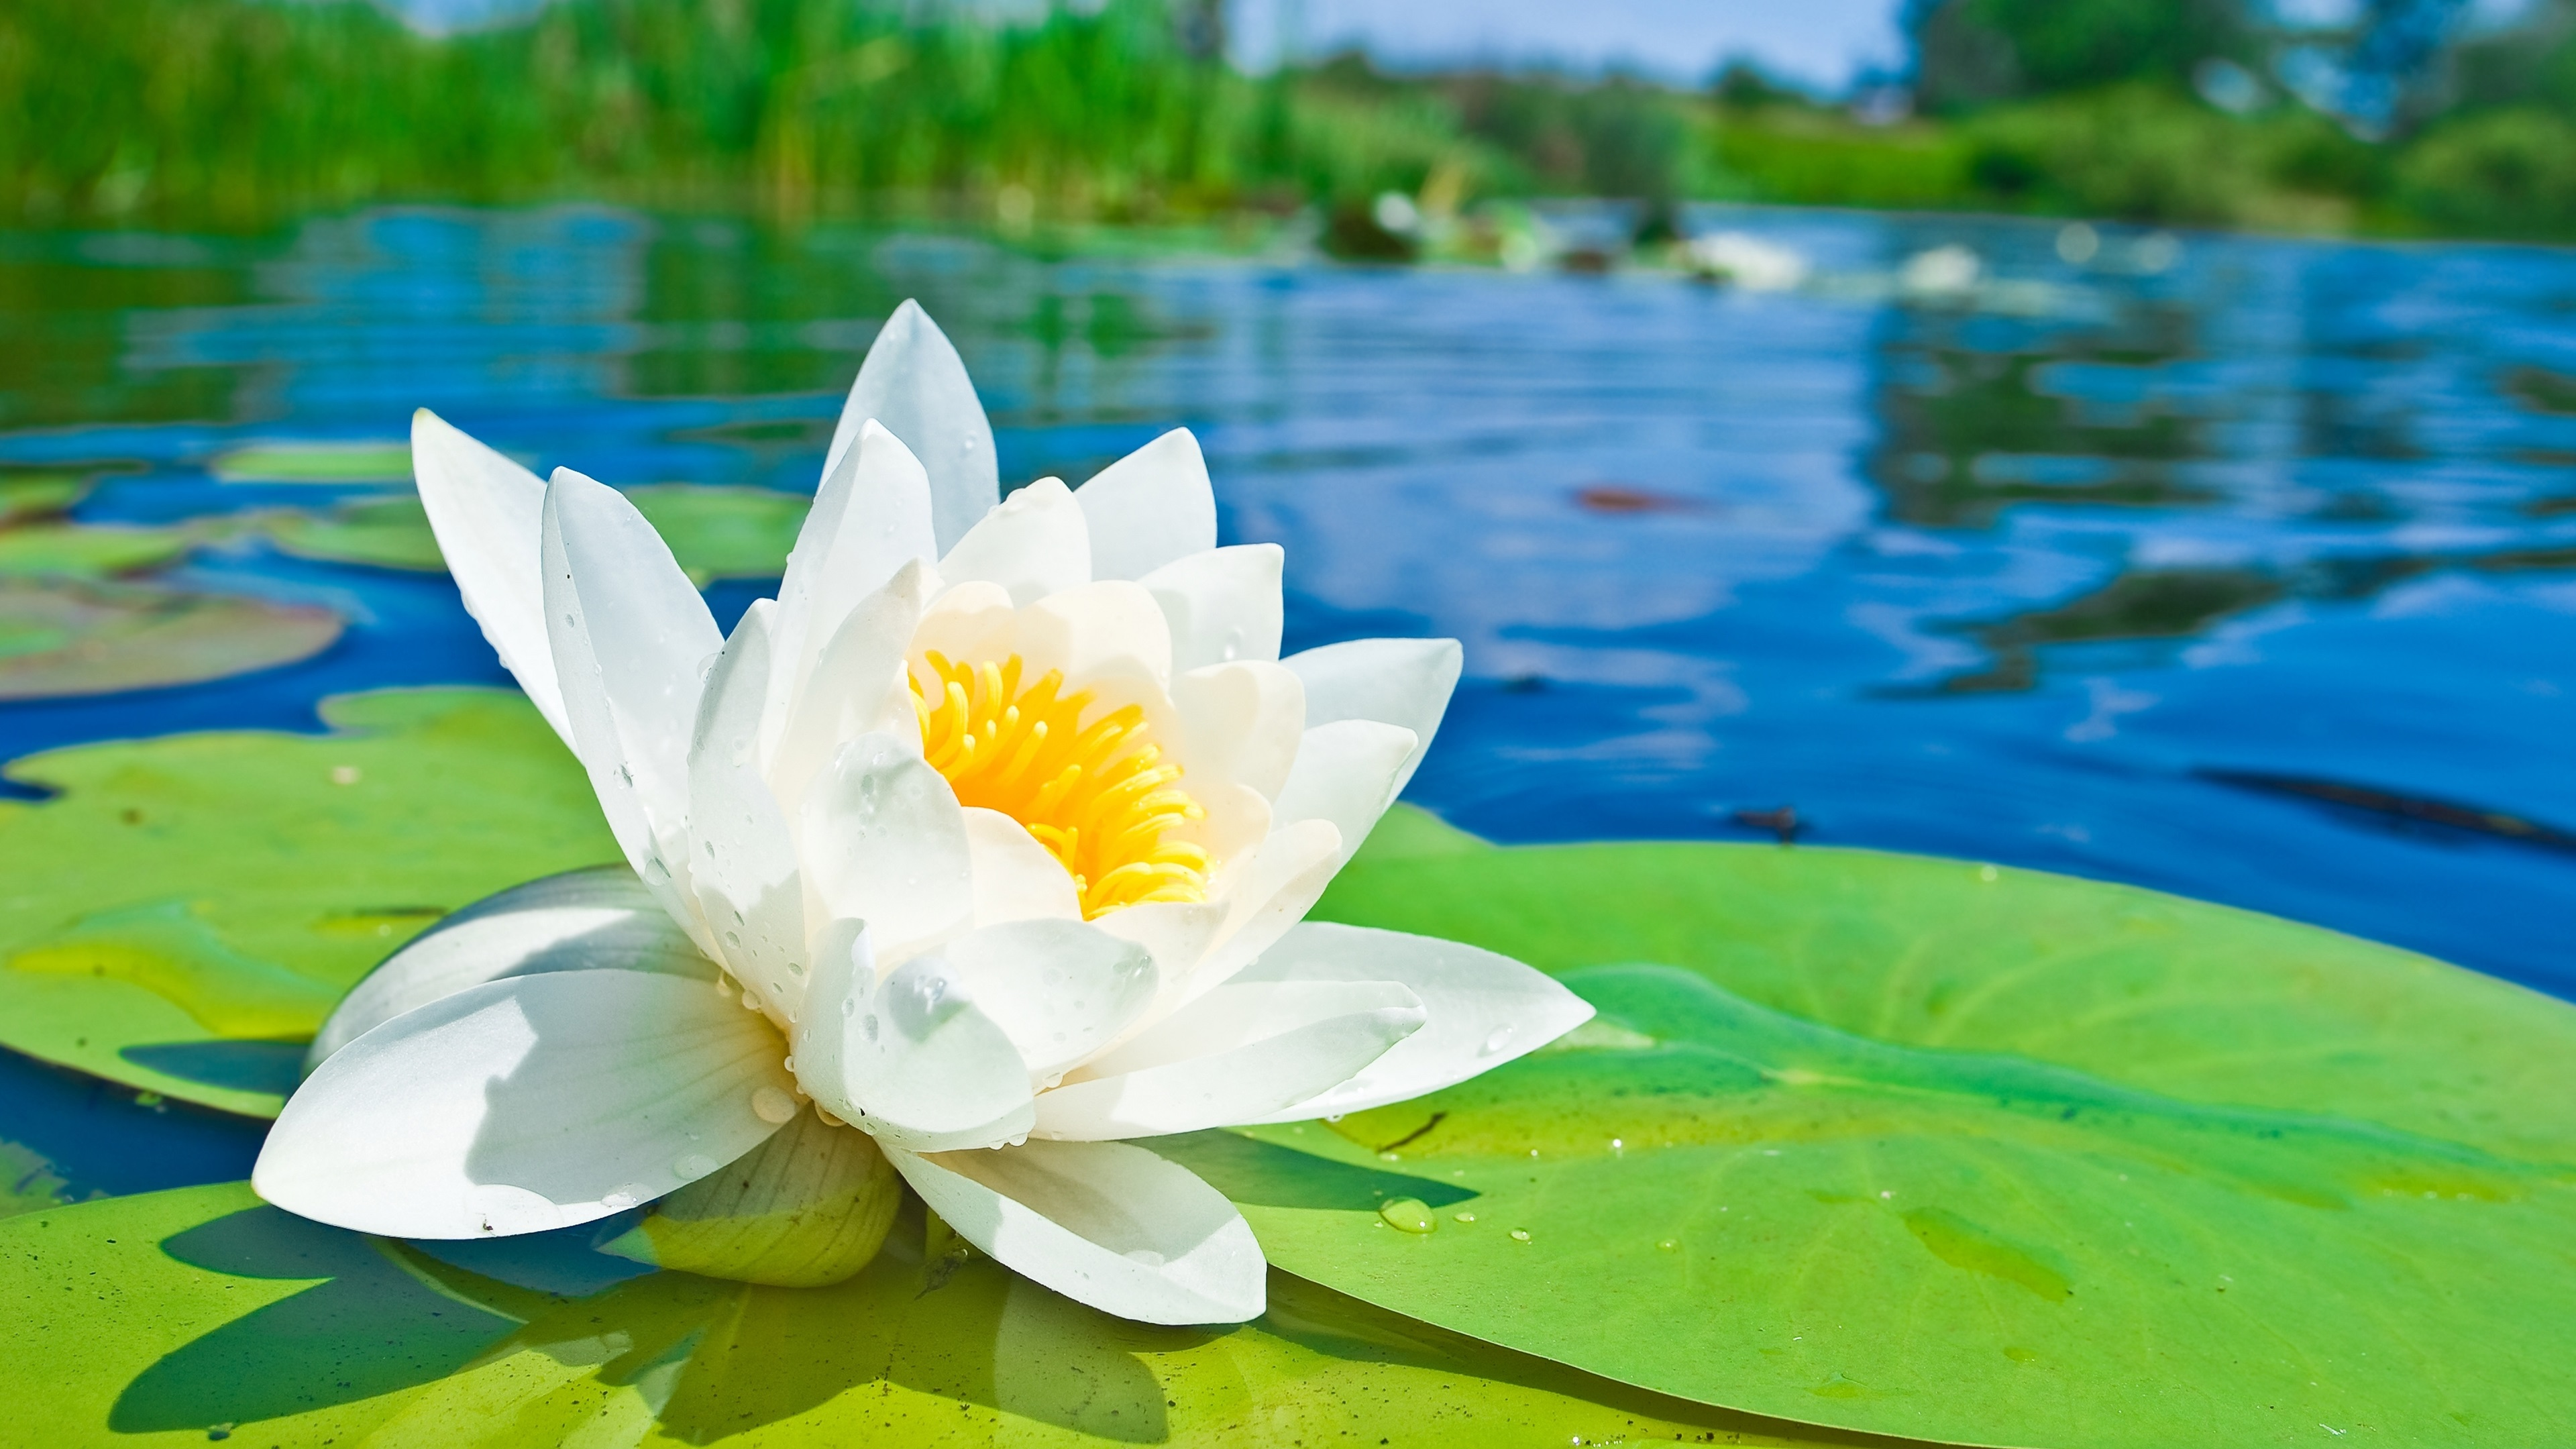 Wallpaper White Lotus Flower Macro Photography Green Leaves Pond